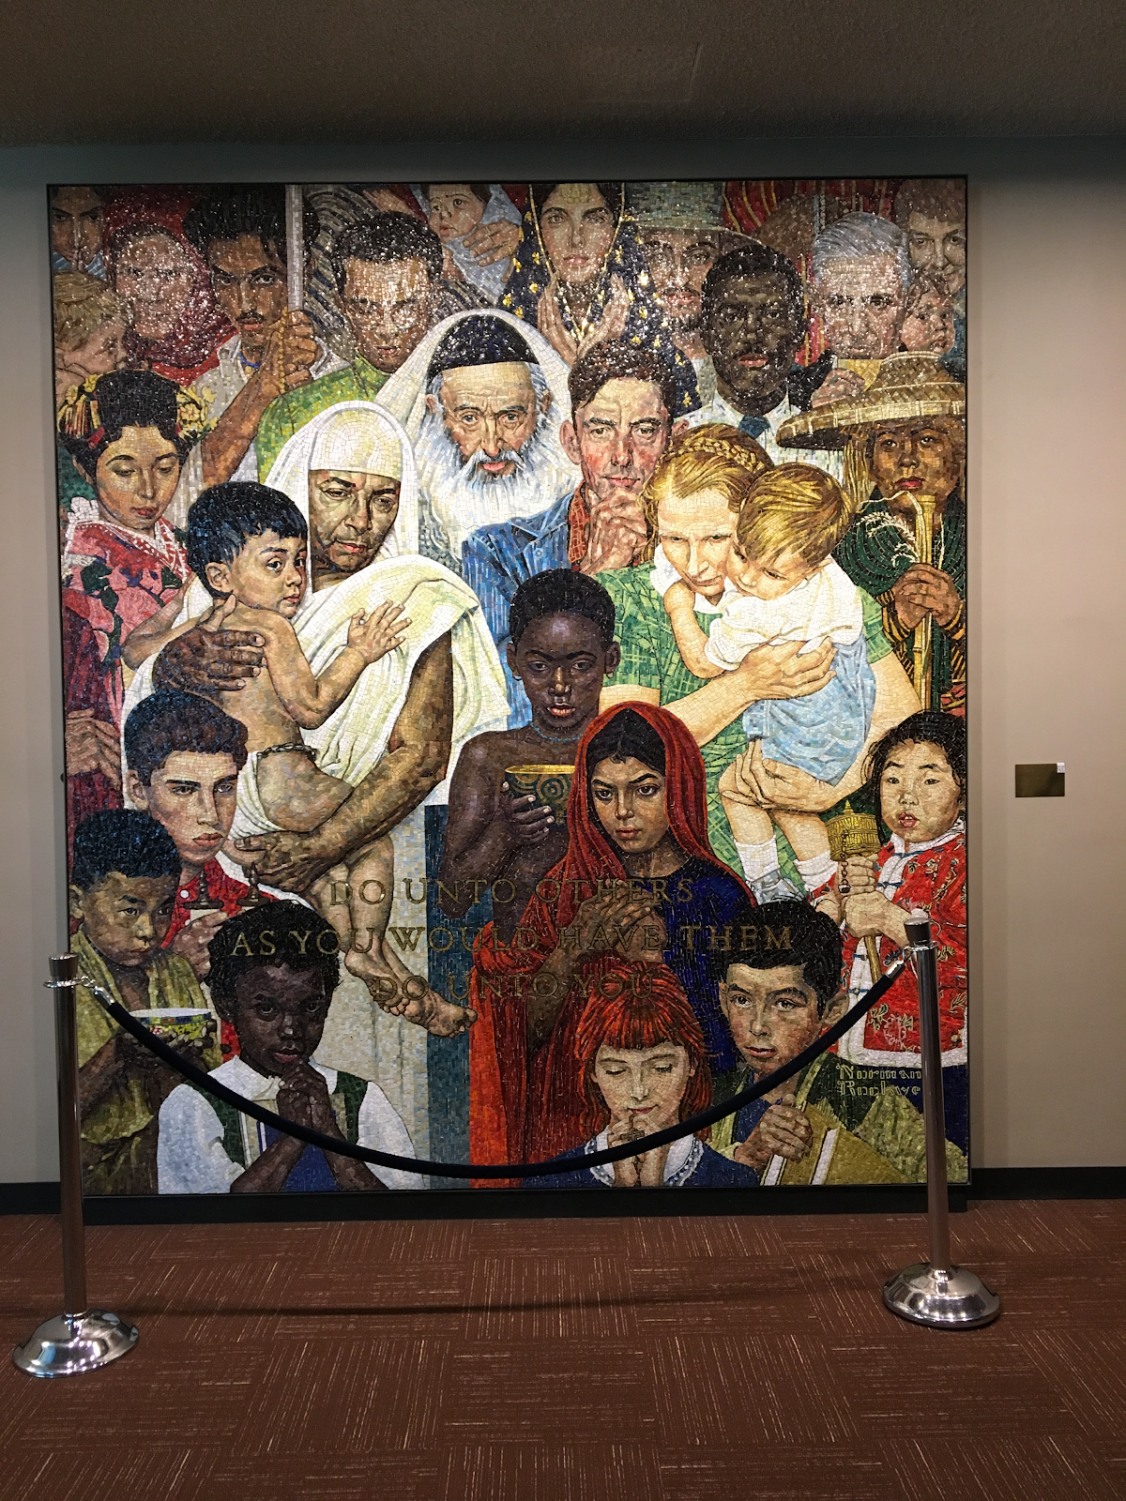 This mural was donated to the UN by the First Lady Nancy Reagan in 185, a gift on behalf of the US. The UN was full of beautiful pieces of art from many different countries, but this one was by far my favourite. The whole building had dated and intricate designs, giving the UN lots of history and character. Before going to the UN, I was not very excited, but by the end of it, it was one of my favourite parts of New York. Our tour guide was very well educated about all the facts and history, which helped make it even more interesting than it already was.